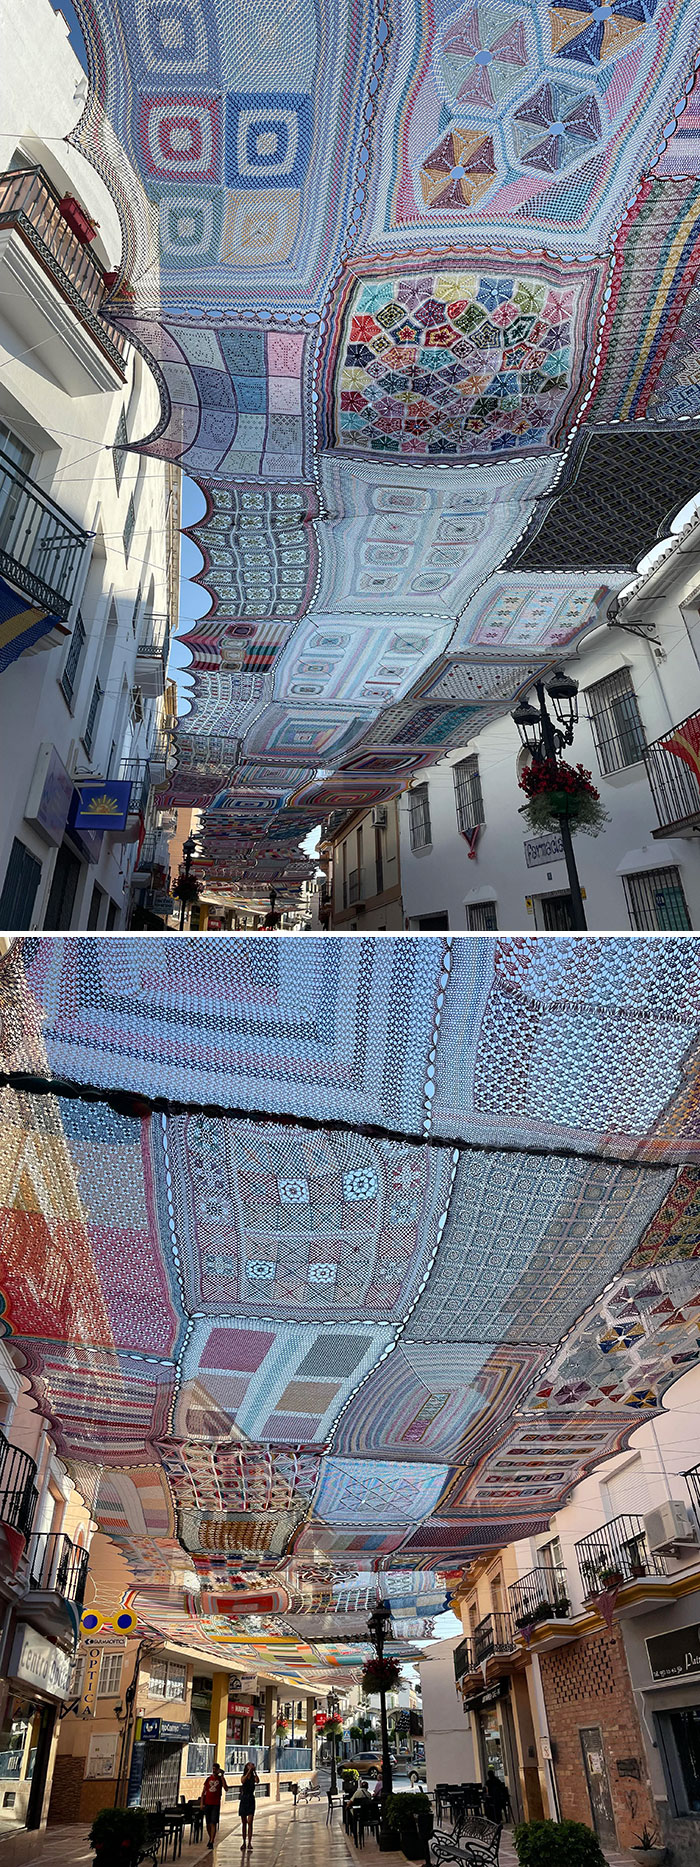 Ladies In My Village In Southern Spain Crochet And Hang These Over This Street